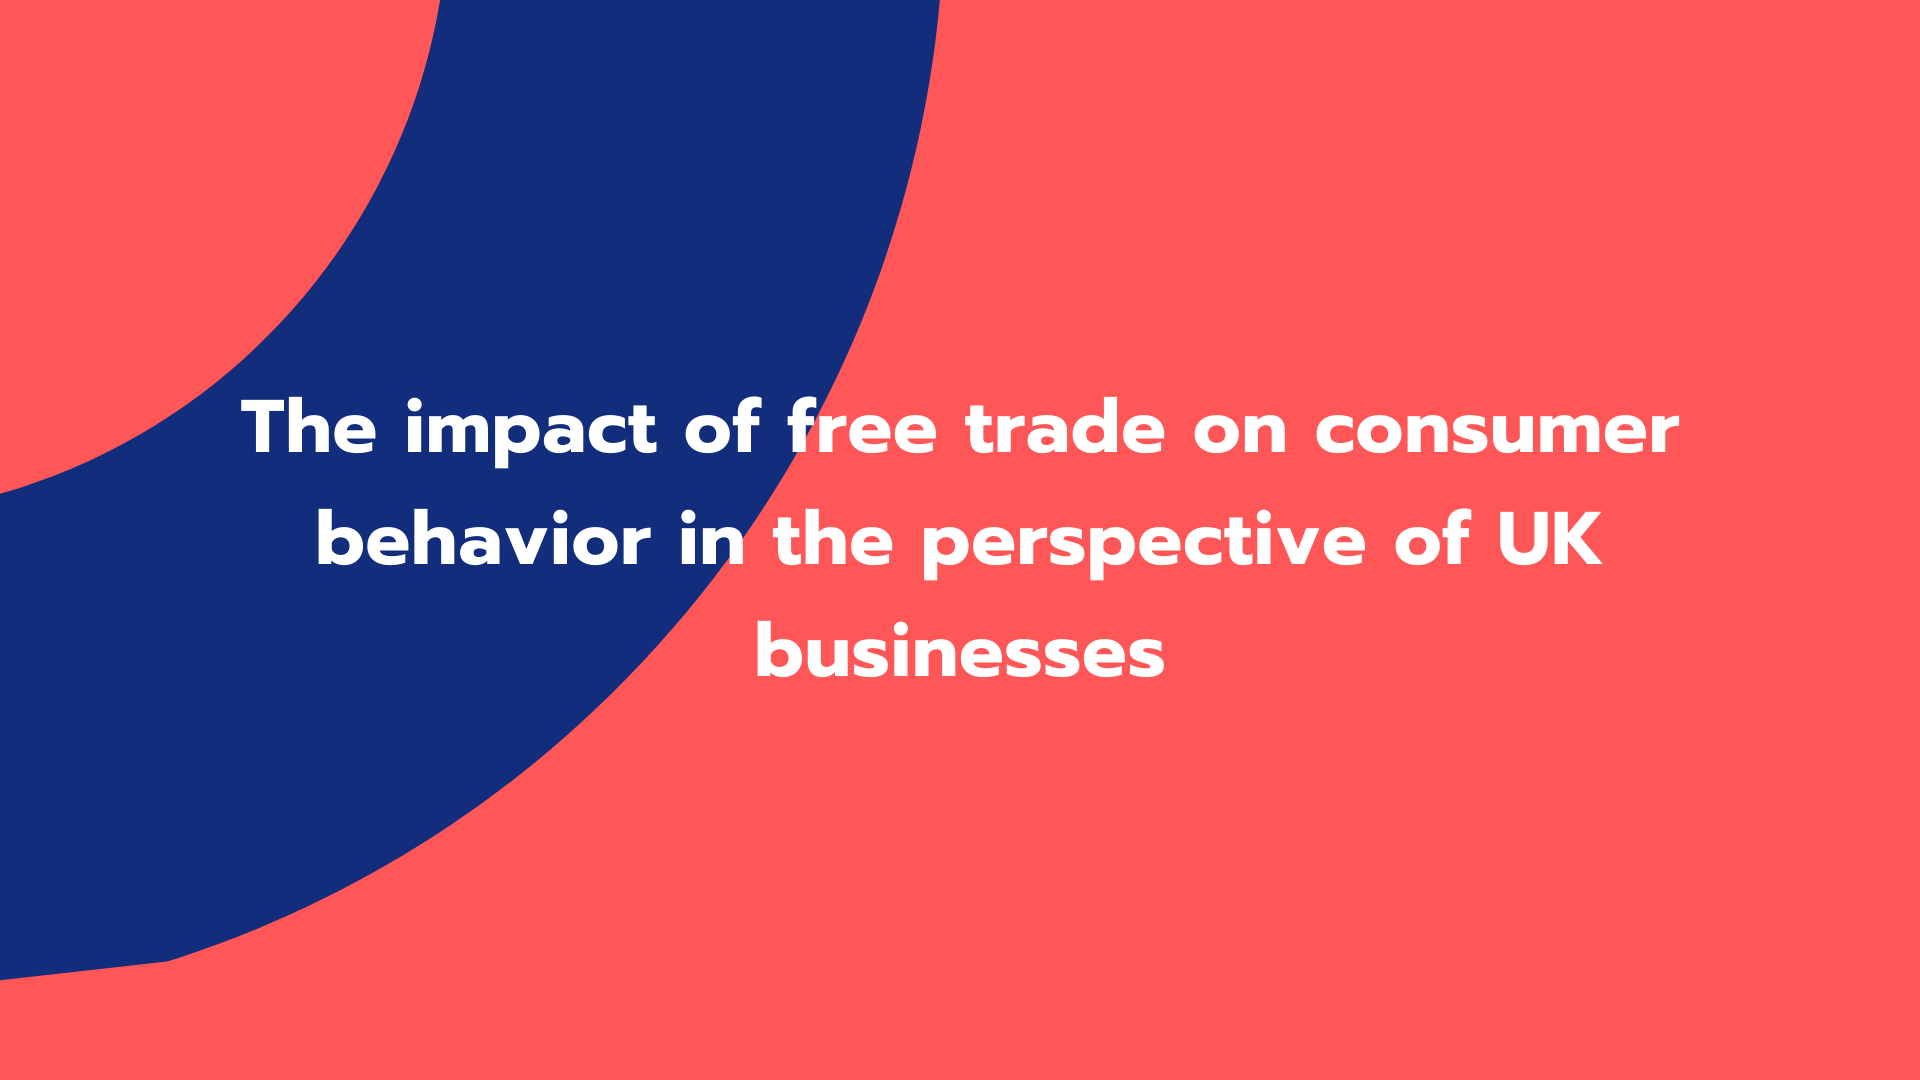 The impact of free trade on consumer behavior in the perspective of UK businesses